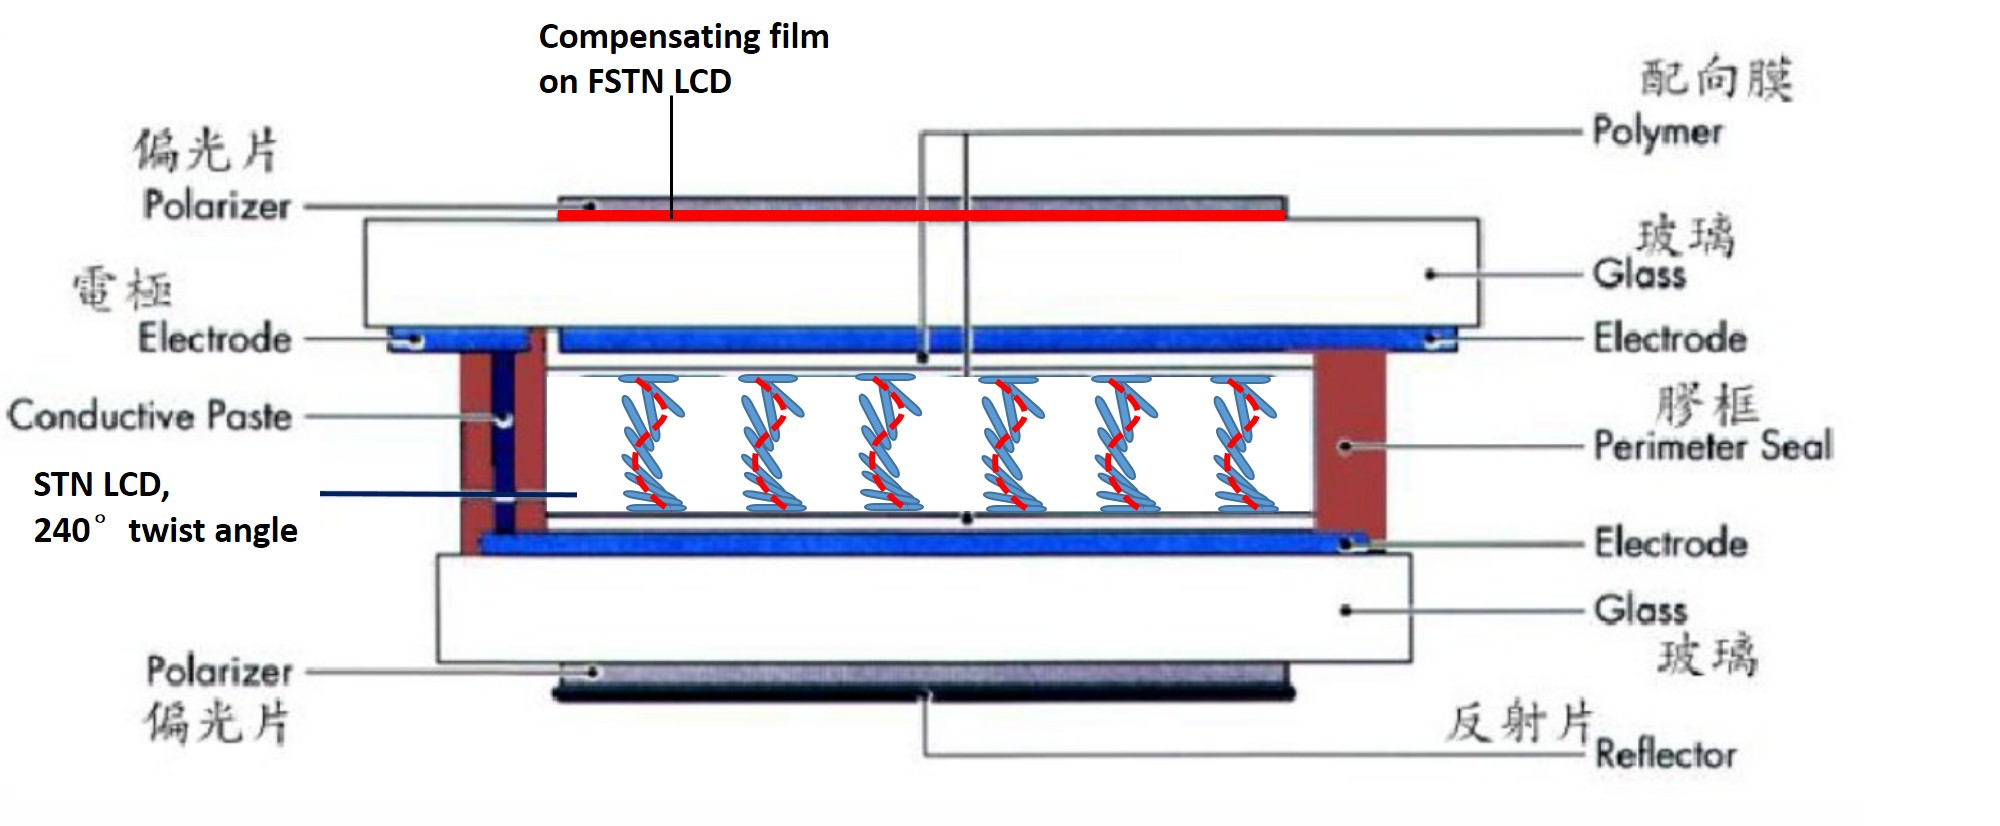 FSTN LCD structure